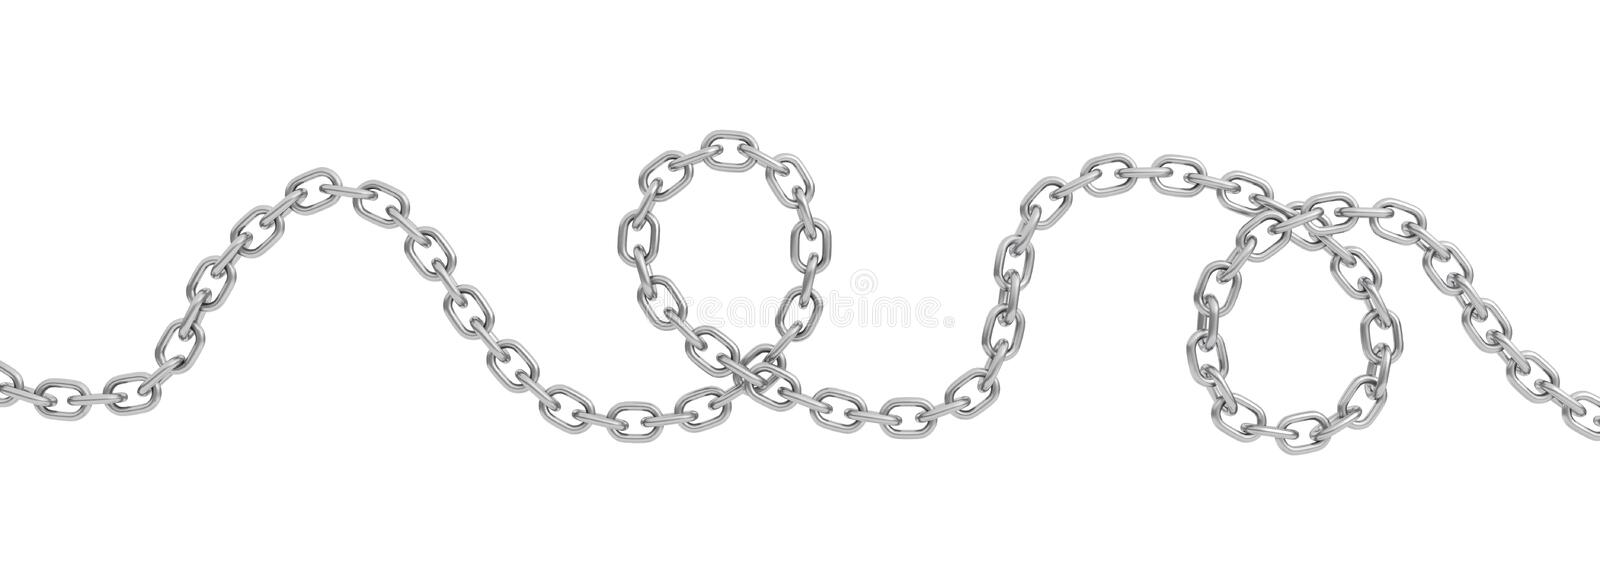 3d rendering of a single curved polished steel chain lying on a white background. stock illustration